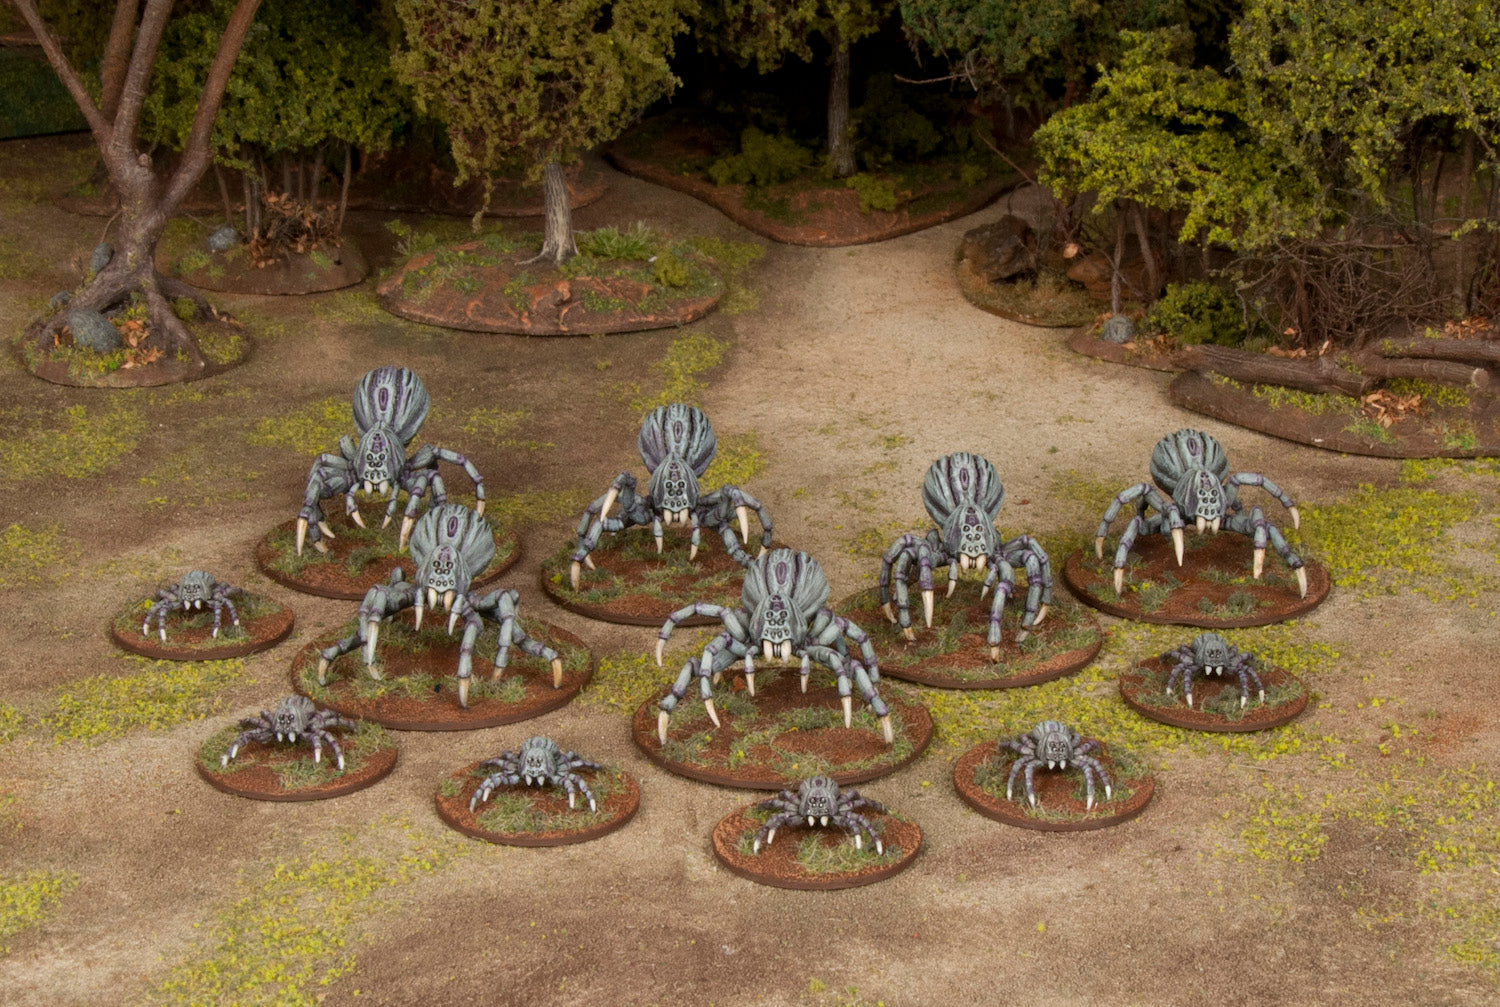 A Closer Look at the Upcoming Giant Spiders Set